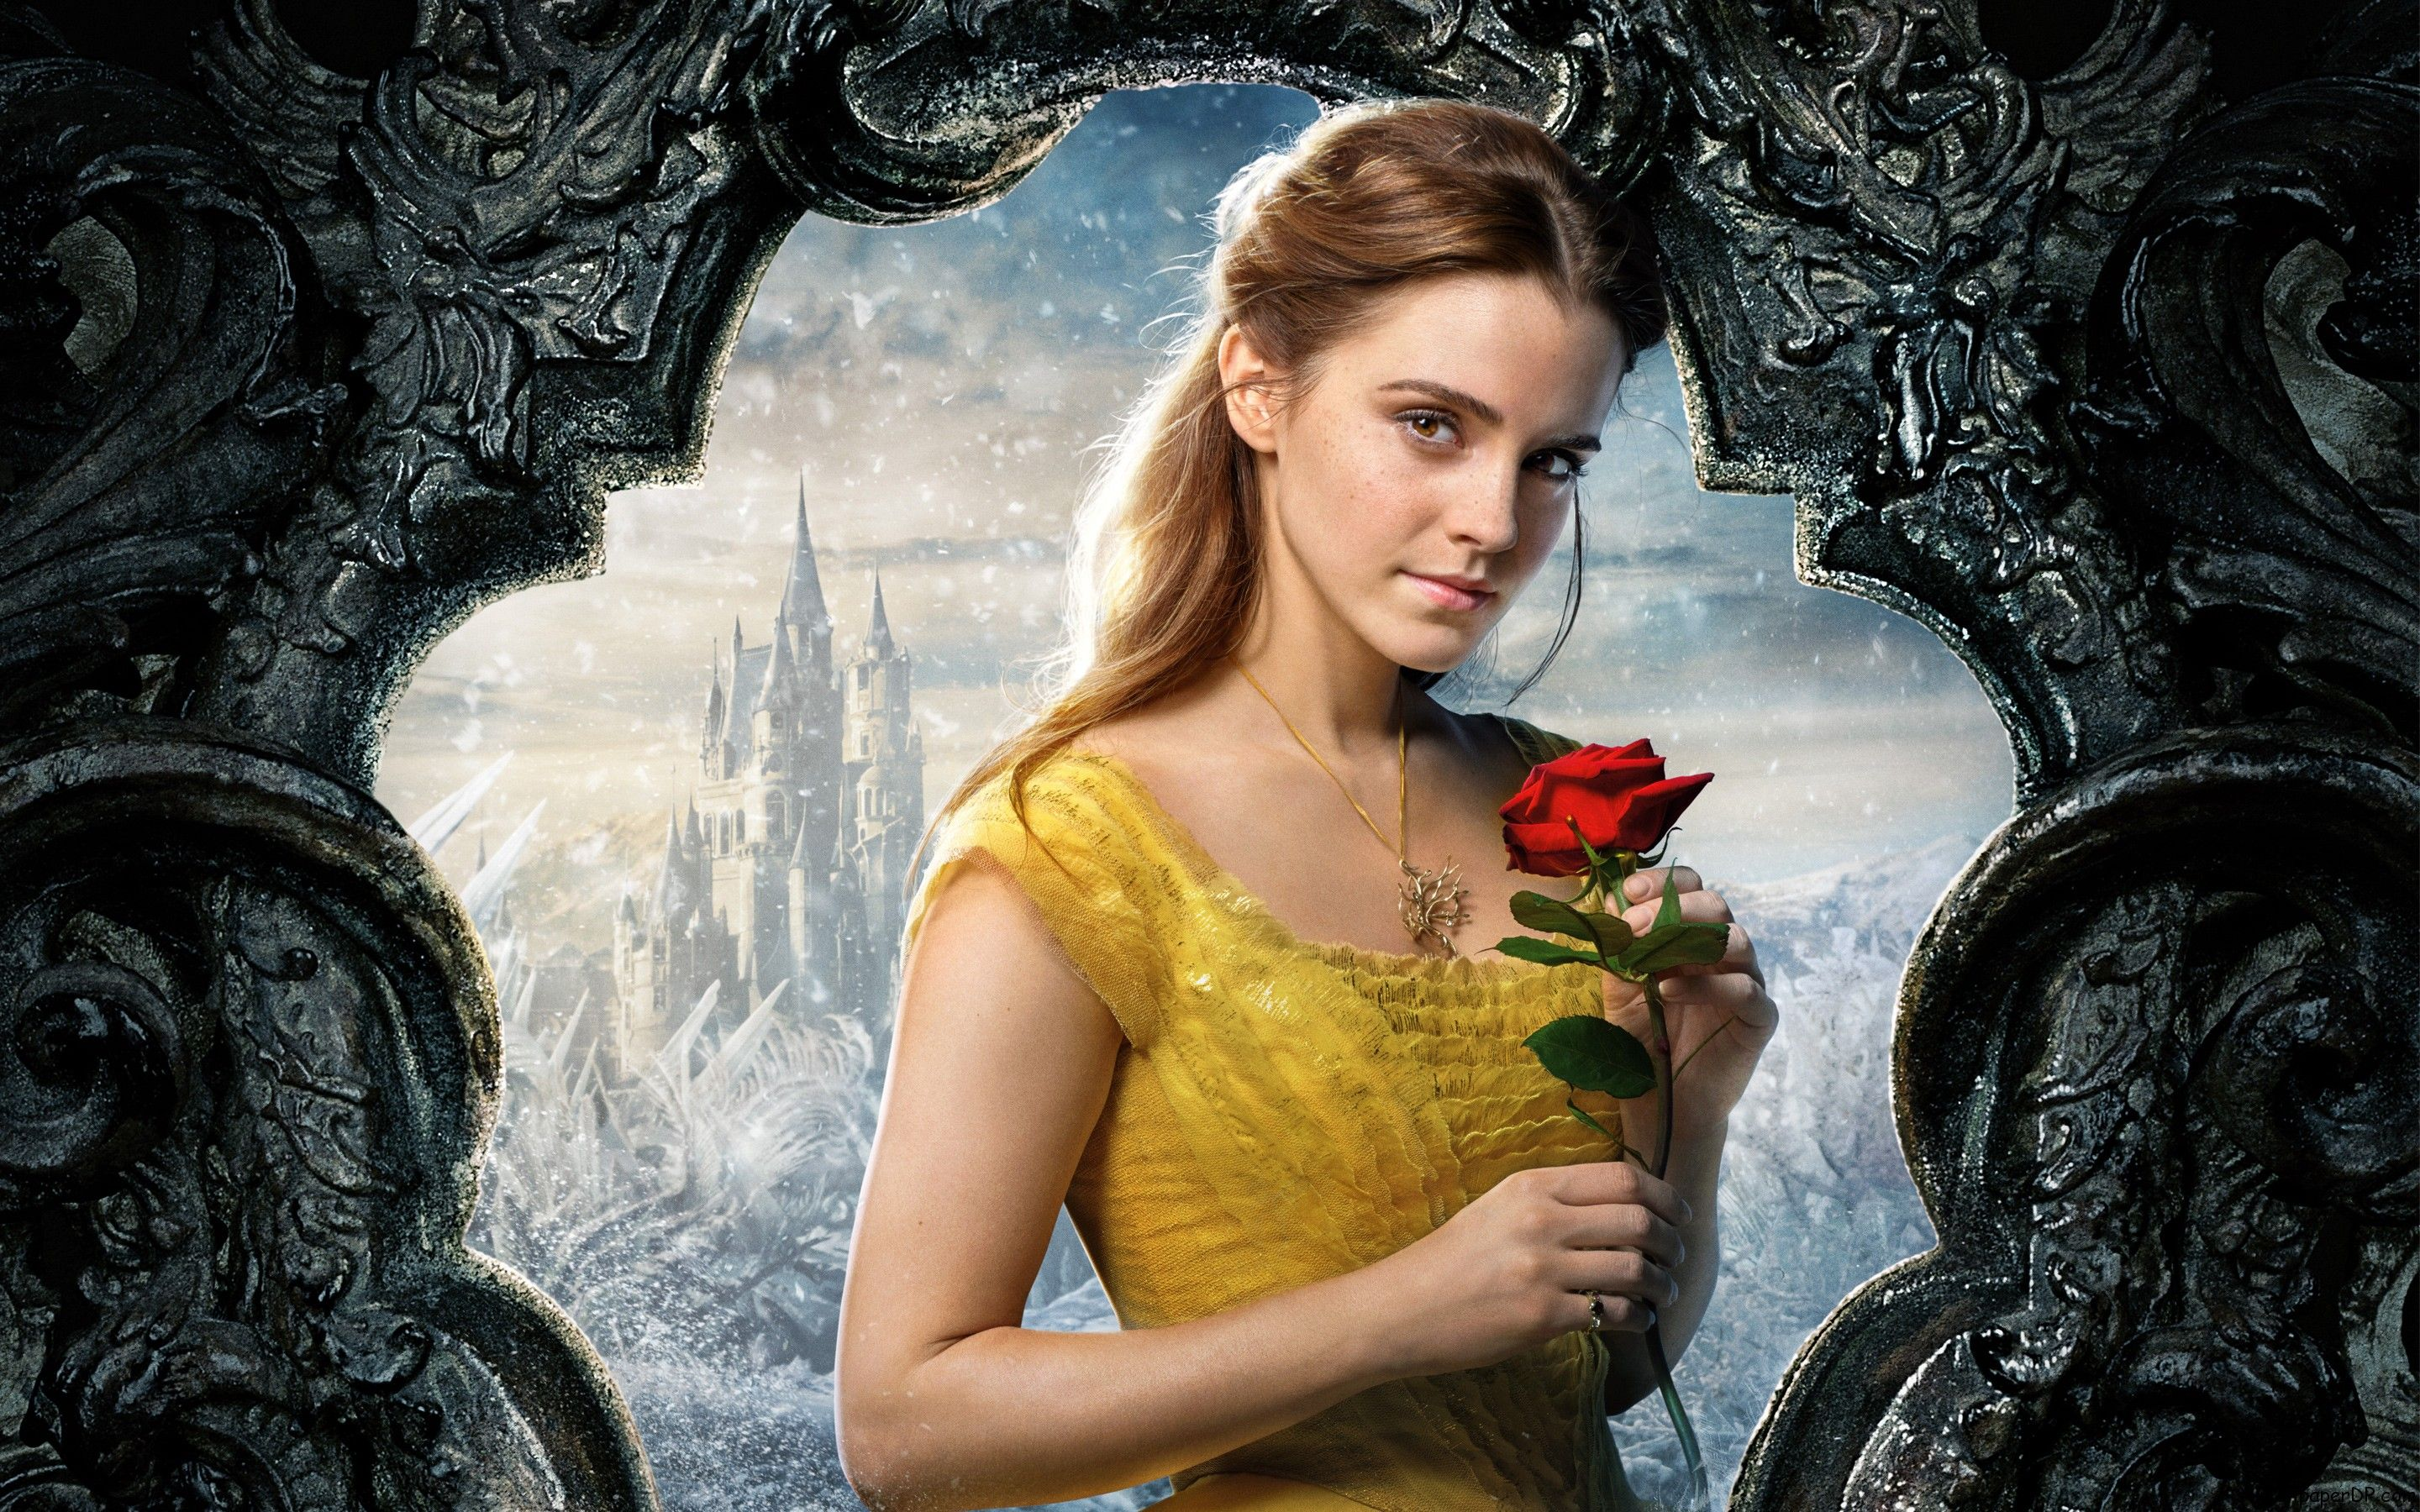 Image For Belle Beauty And The Beast Emma Watson 5k